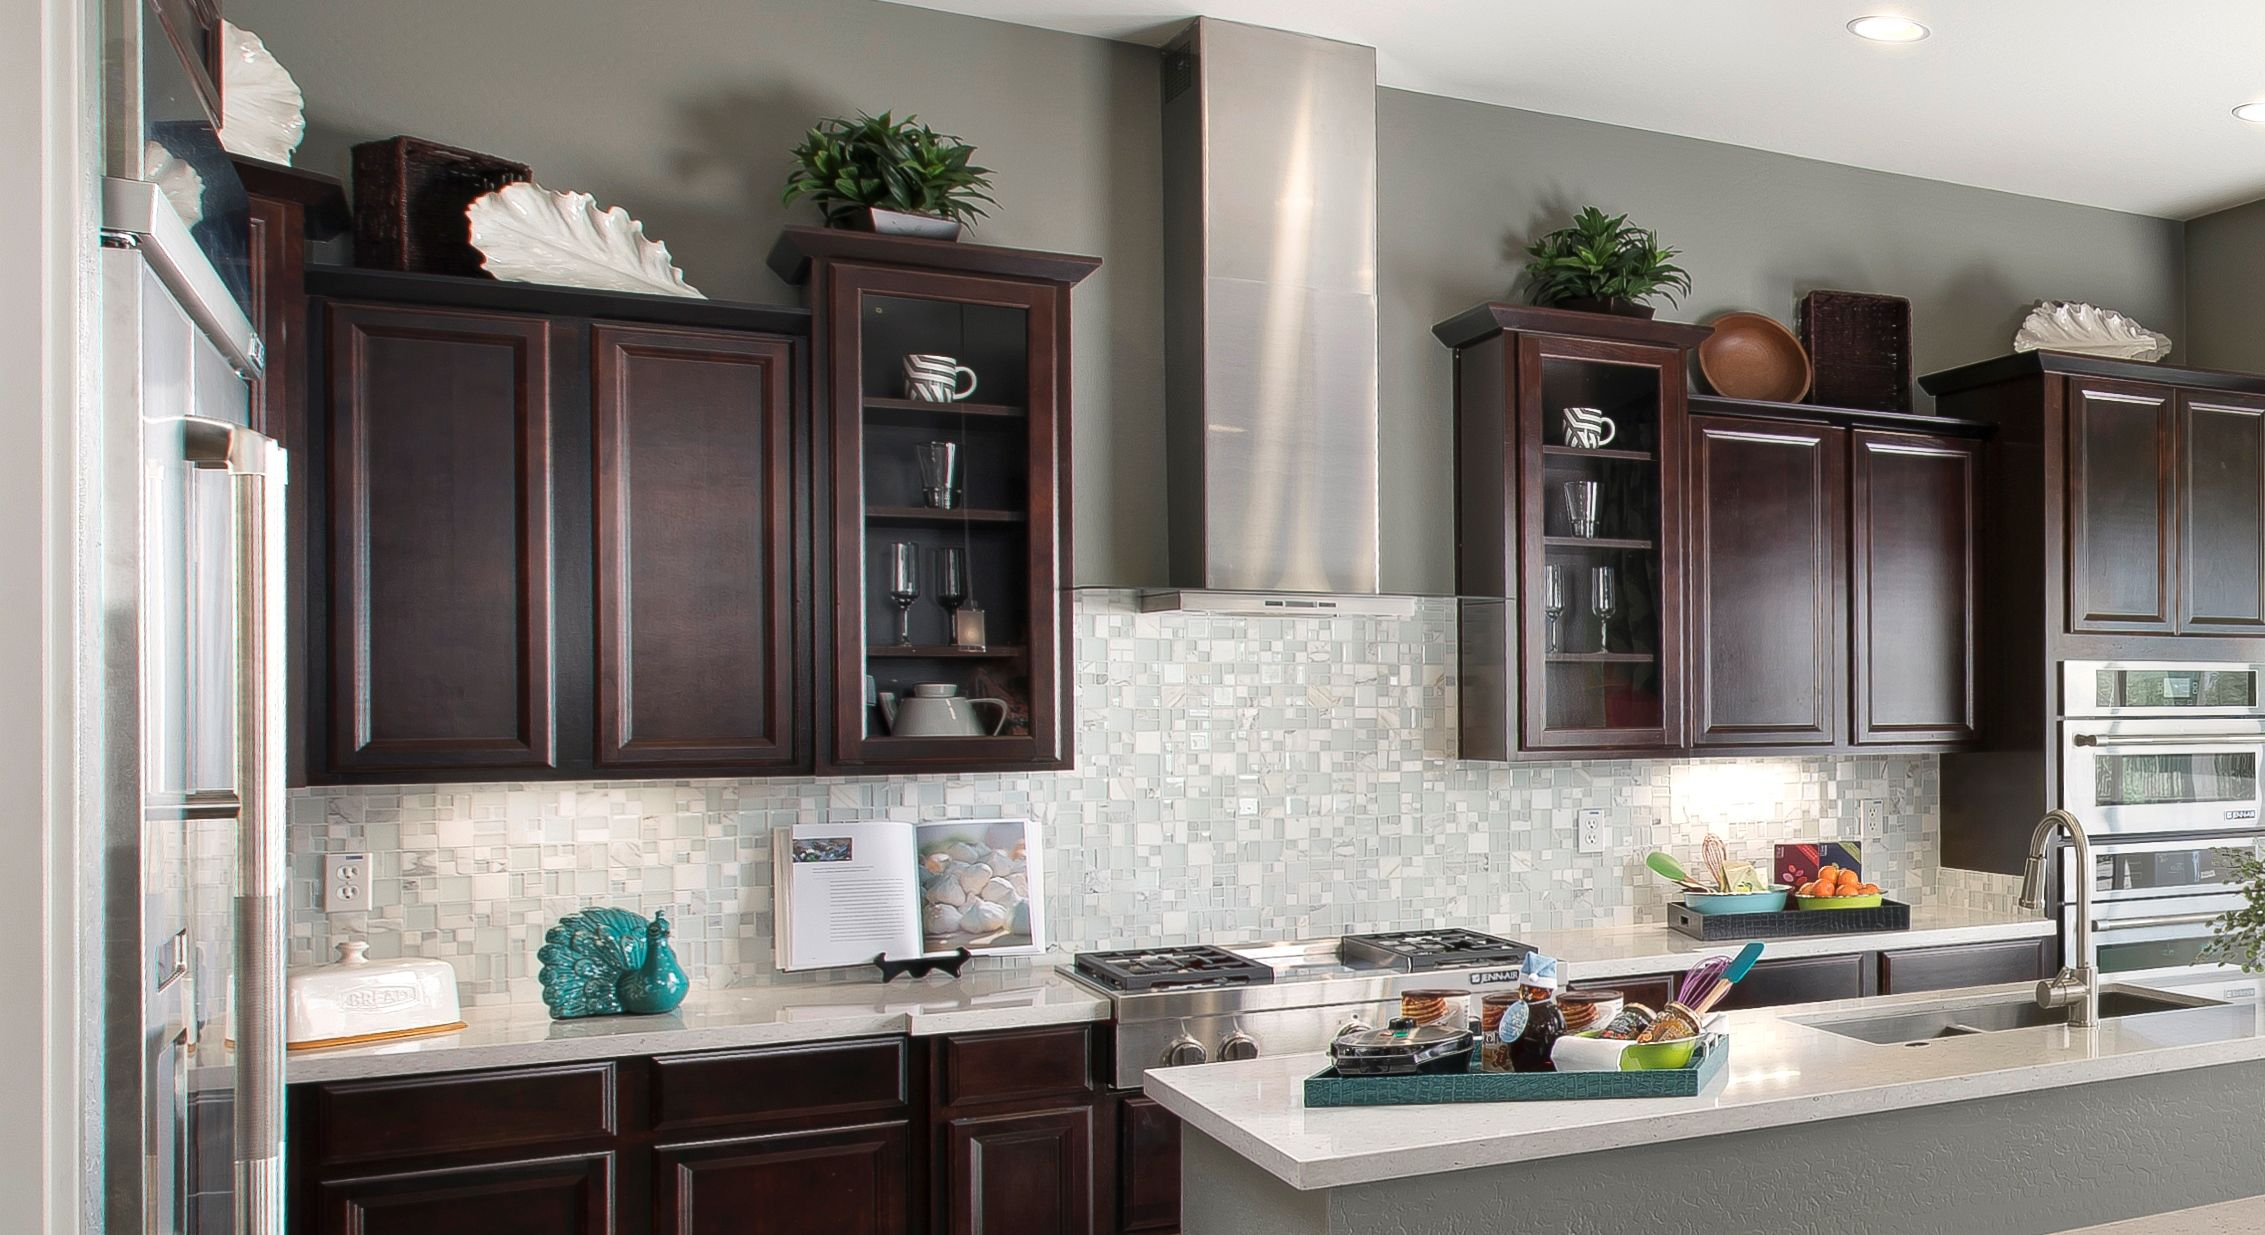 We Ve Made It Halfway Through The Week Walltilewednesday Features A Gorgeous Backsplash With Our Lucent Kitchen Cabinets Decor Emser Tile Gorgeous Backsplash